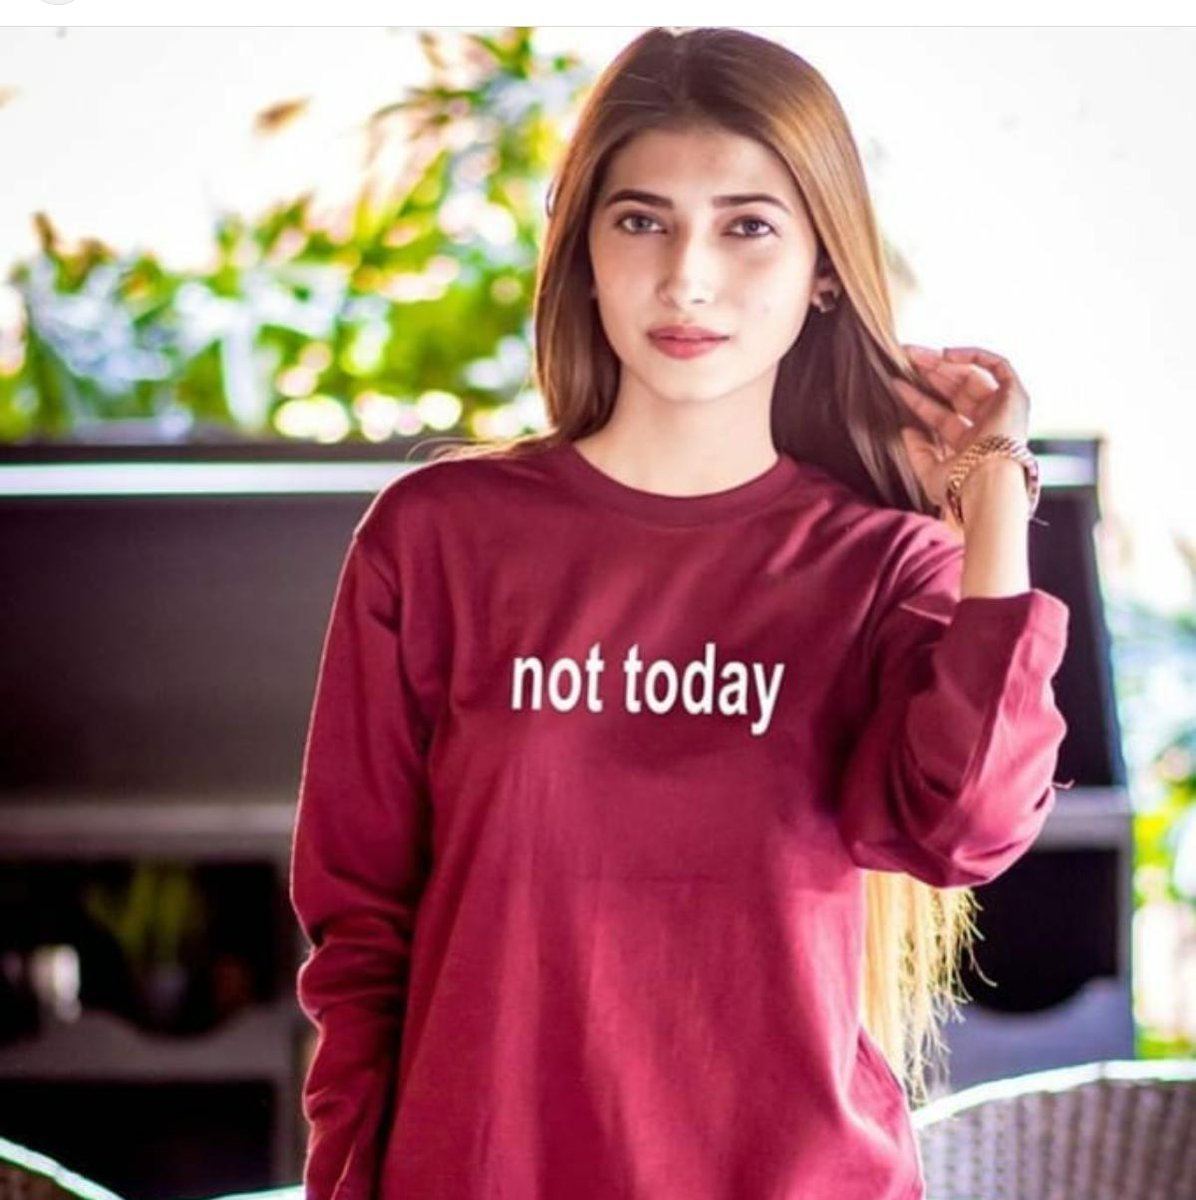 #tshirts  in just Rs:599 inbox us to place an order.. for question and queries contact/whatssapp: 03122371437  #trendy #fashion #clothing #tshirts #pakifashion #croptops #pakistan #lahore #islamabad #karachi  #pakistanfashion #pakistanistyle #wearyourattitudepic.twitter.com/9MWNHV0b2v